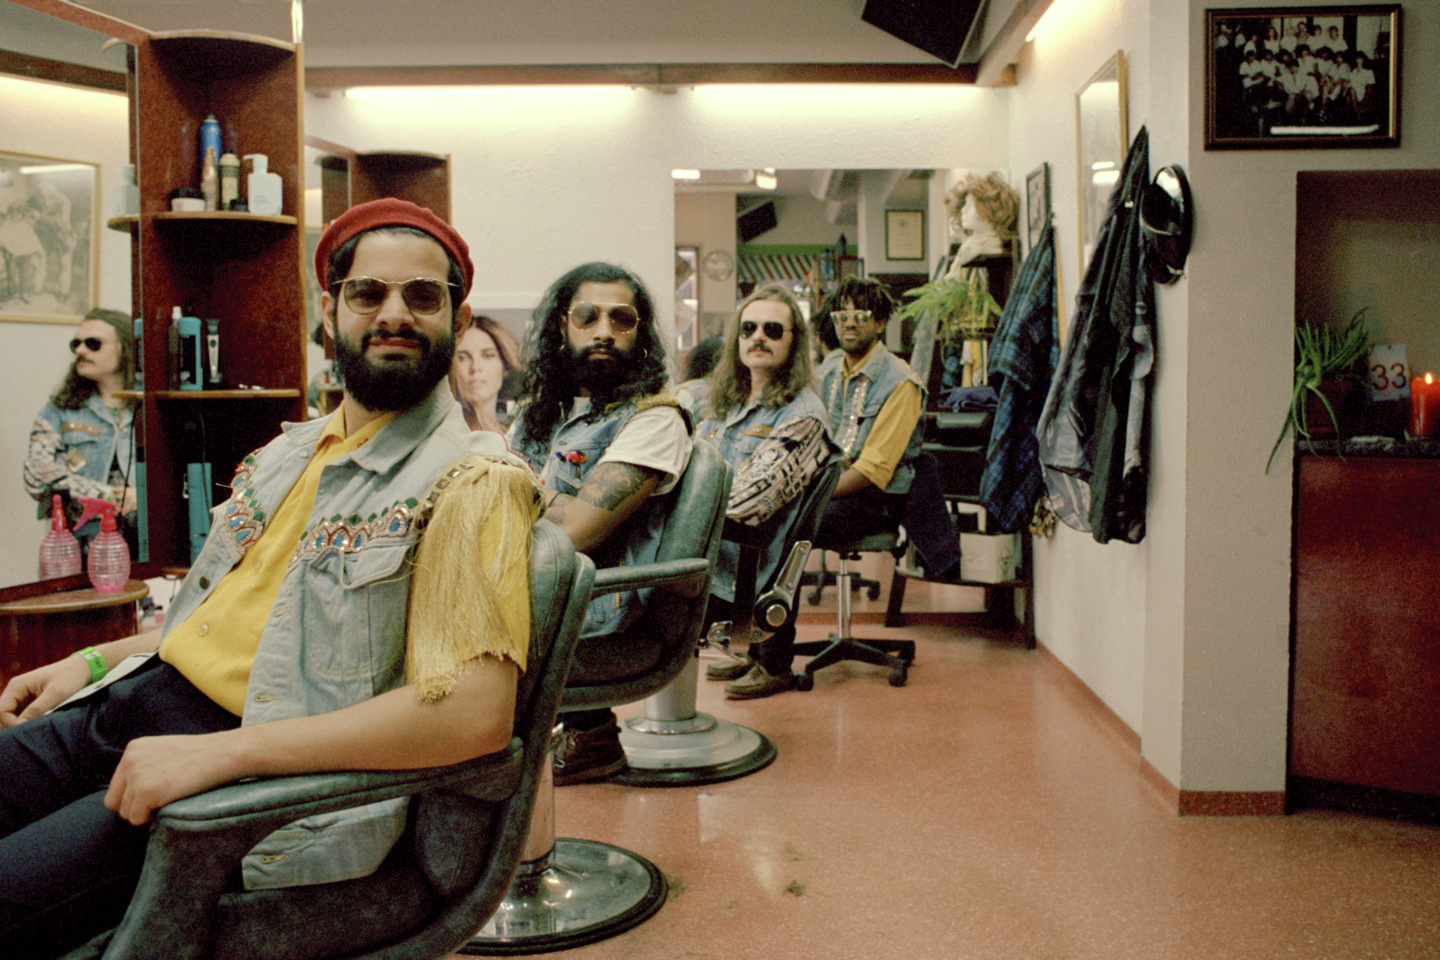 Flamingods_Please-upload-a-lower-res-web-JPEG-photo-for-use-online